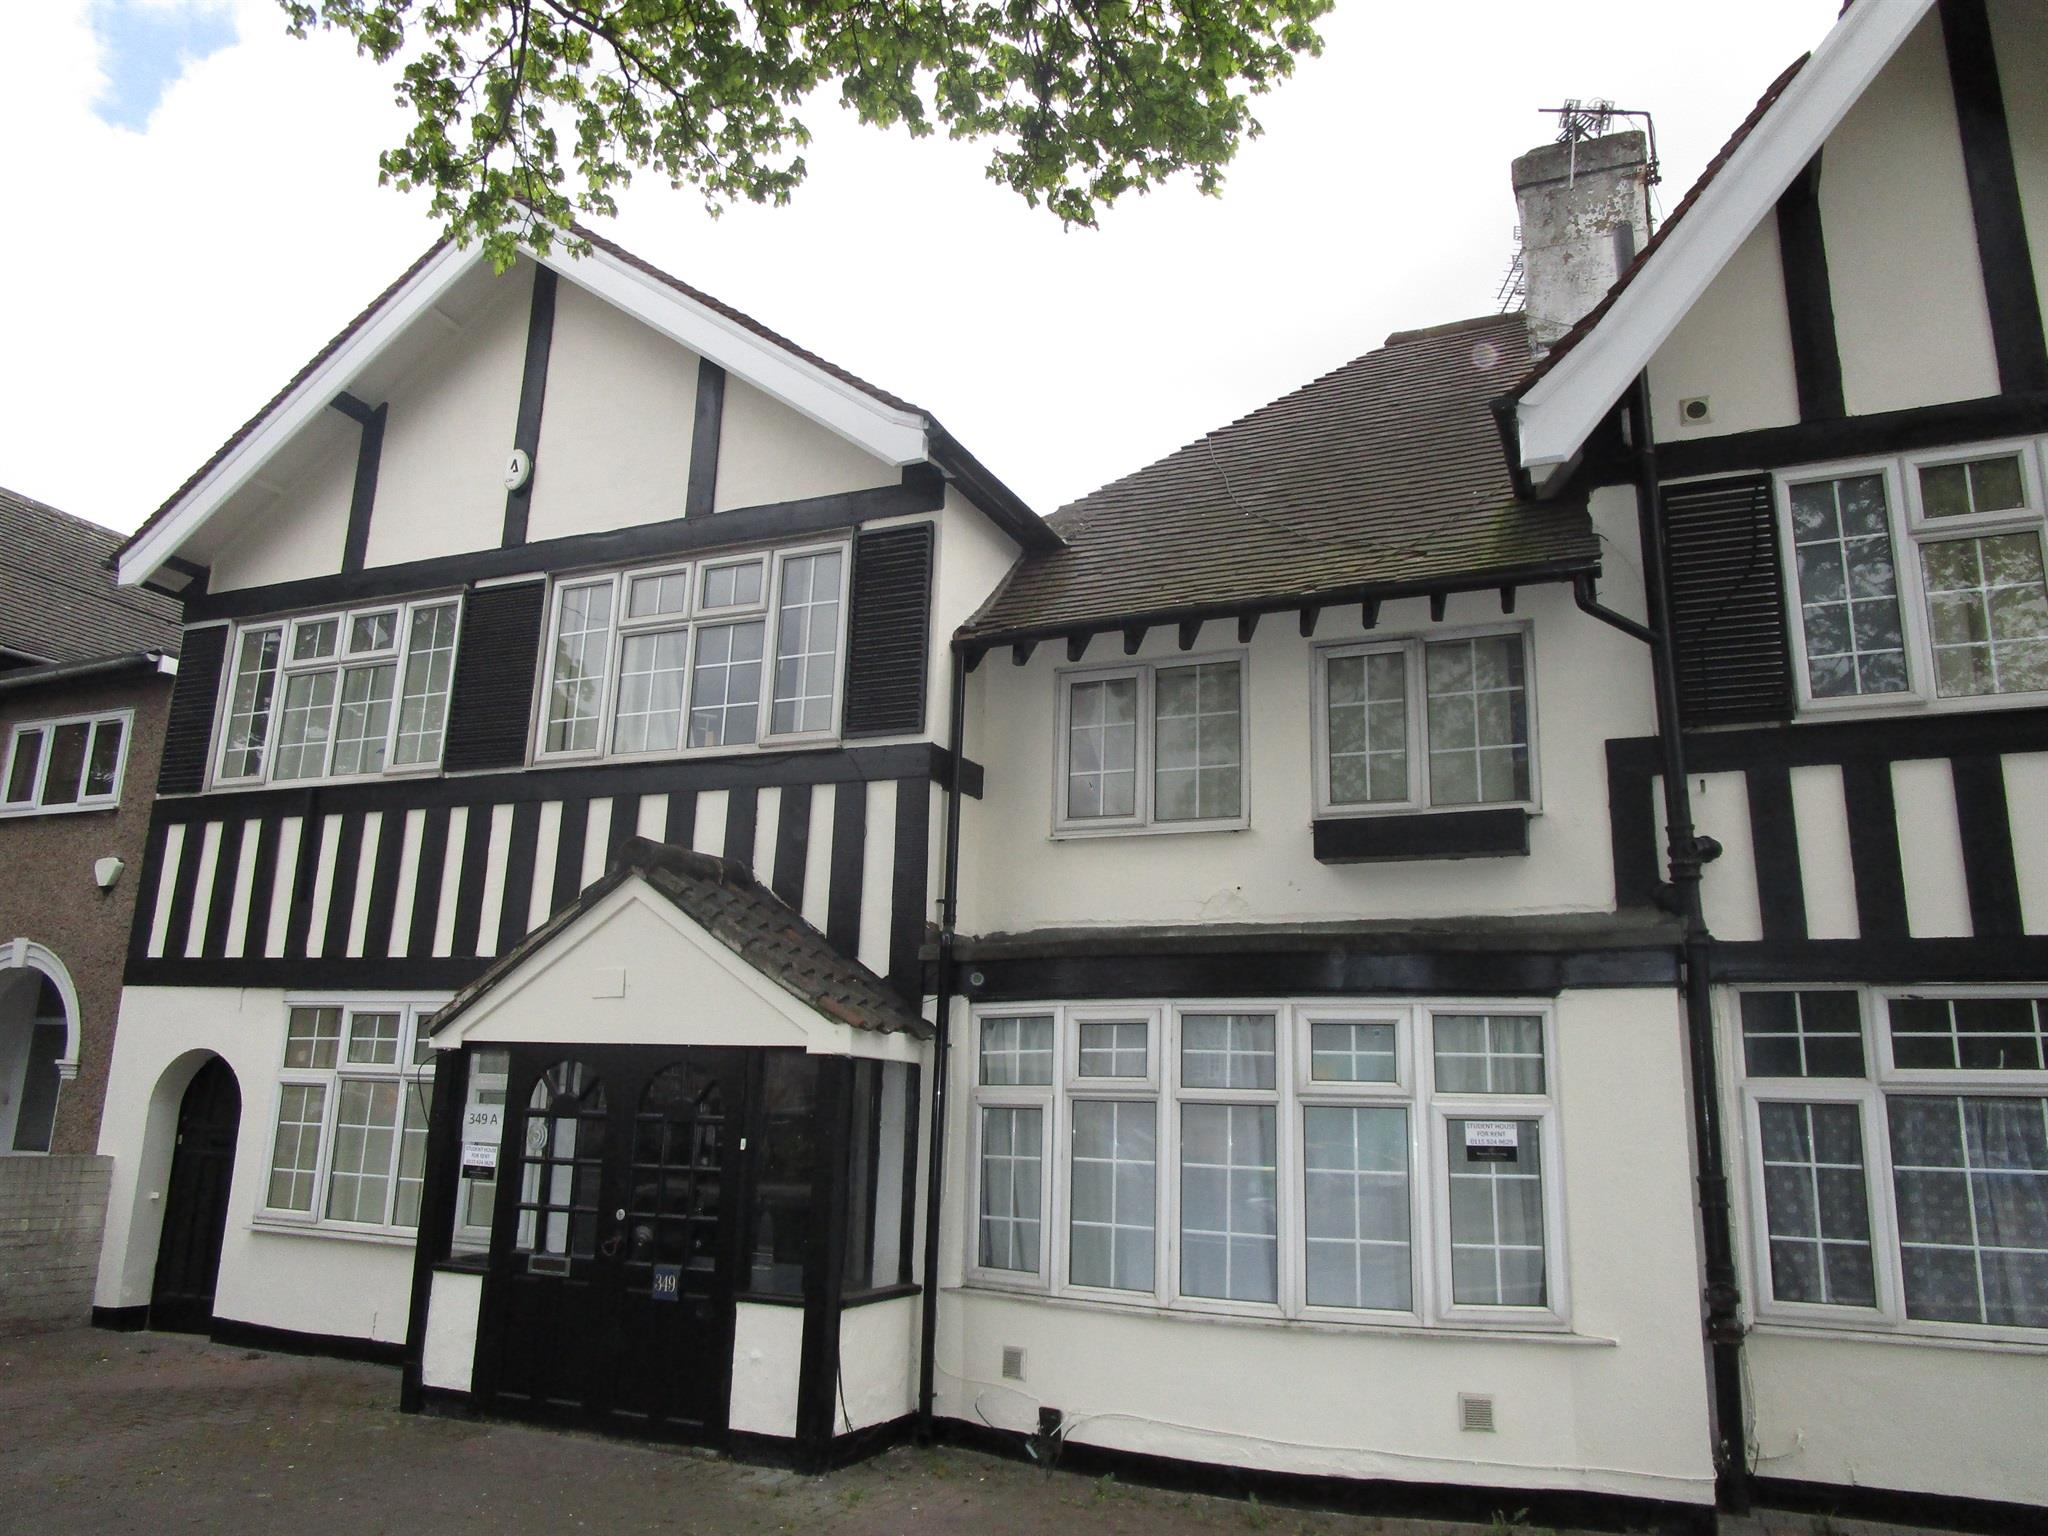 15 bedroom semi detached house for sale derby road for 15 bedroom house for sale